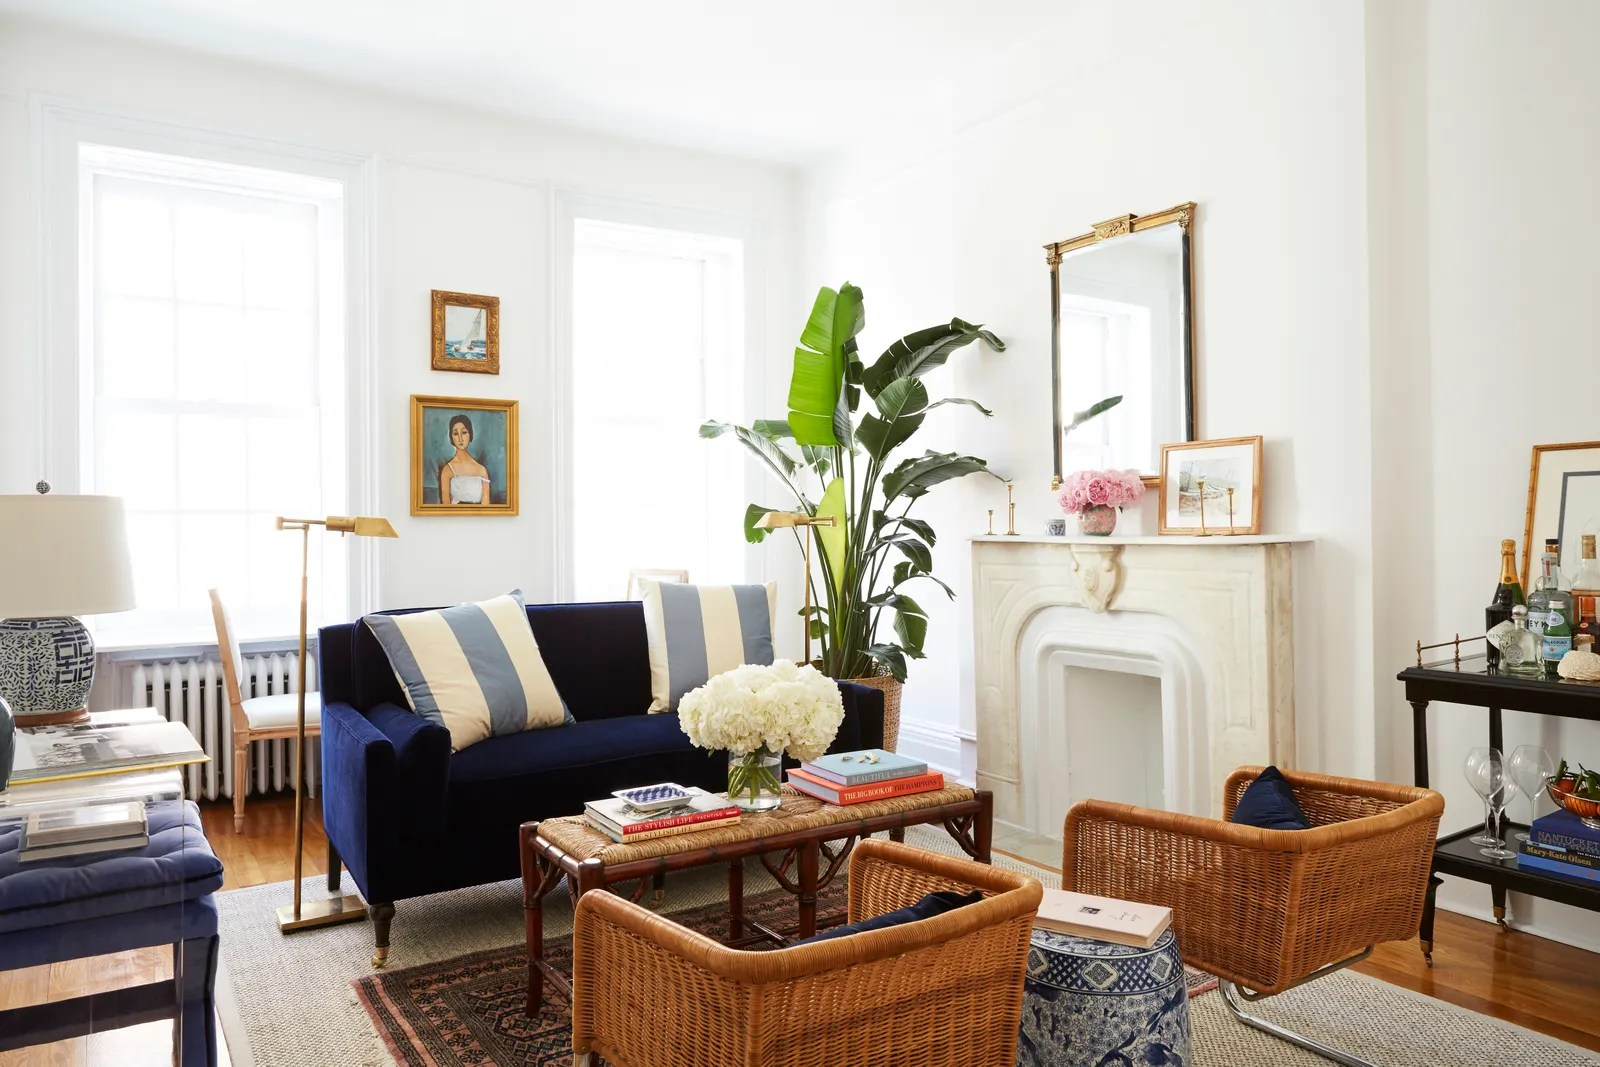 8 Small Living Room Ideas That Will Maximize Your Space ... on Small Living Room  id=12877